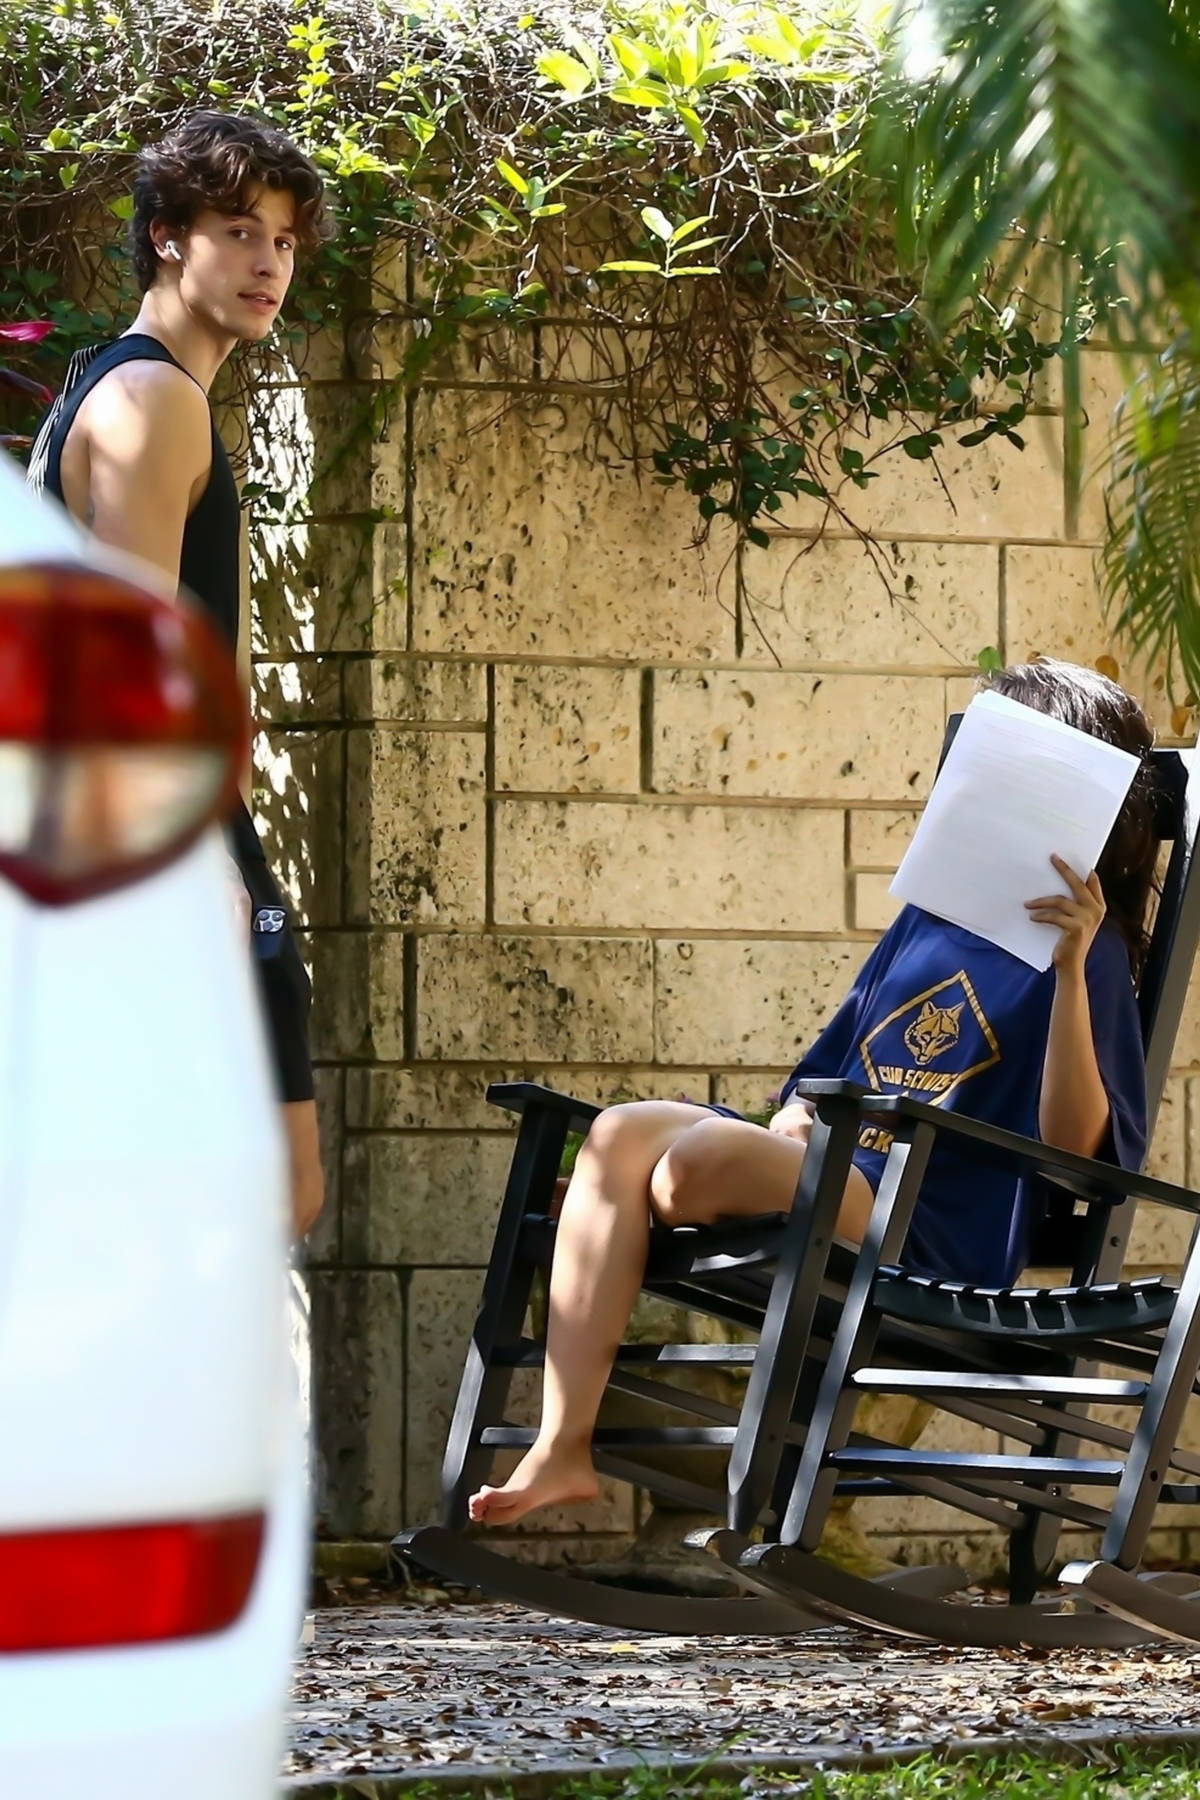 Camila Cabello seen reading on a rocking chair while Shawn Mendes goes for a walk around the neighborhood in Miami, Florida